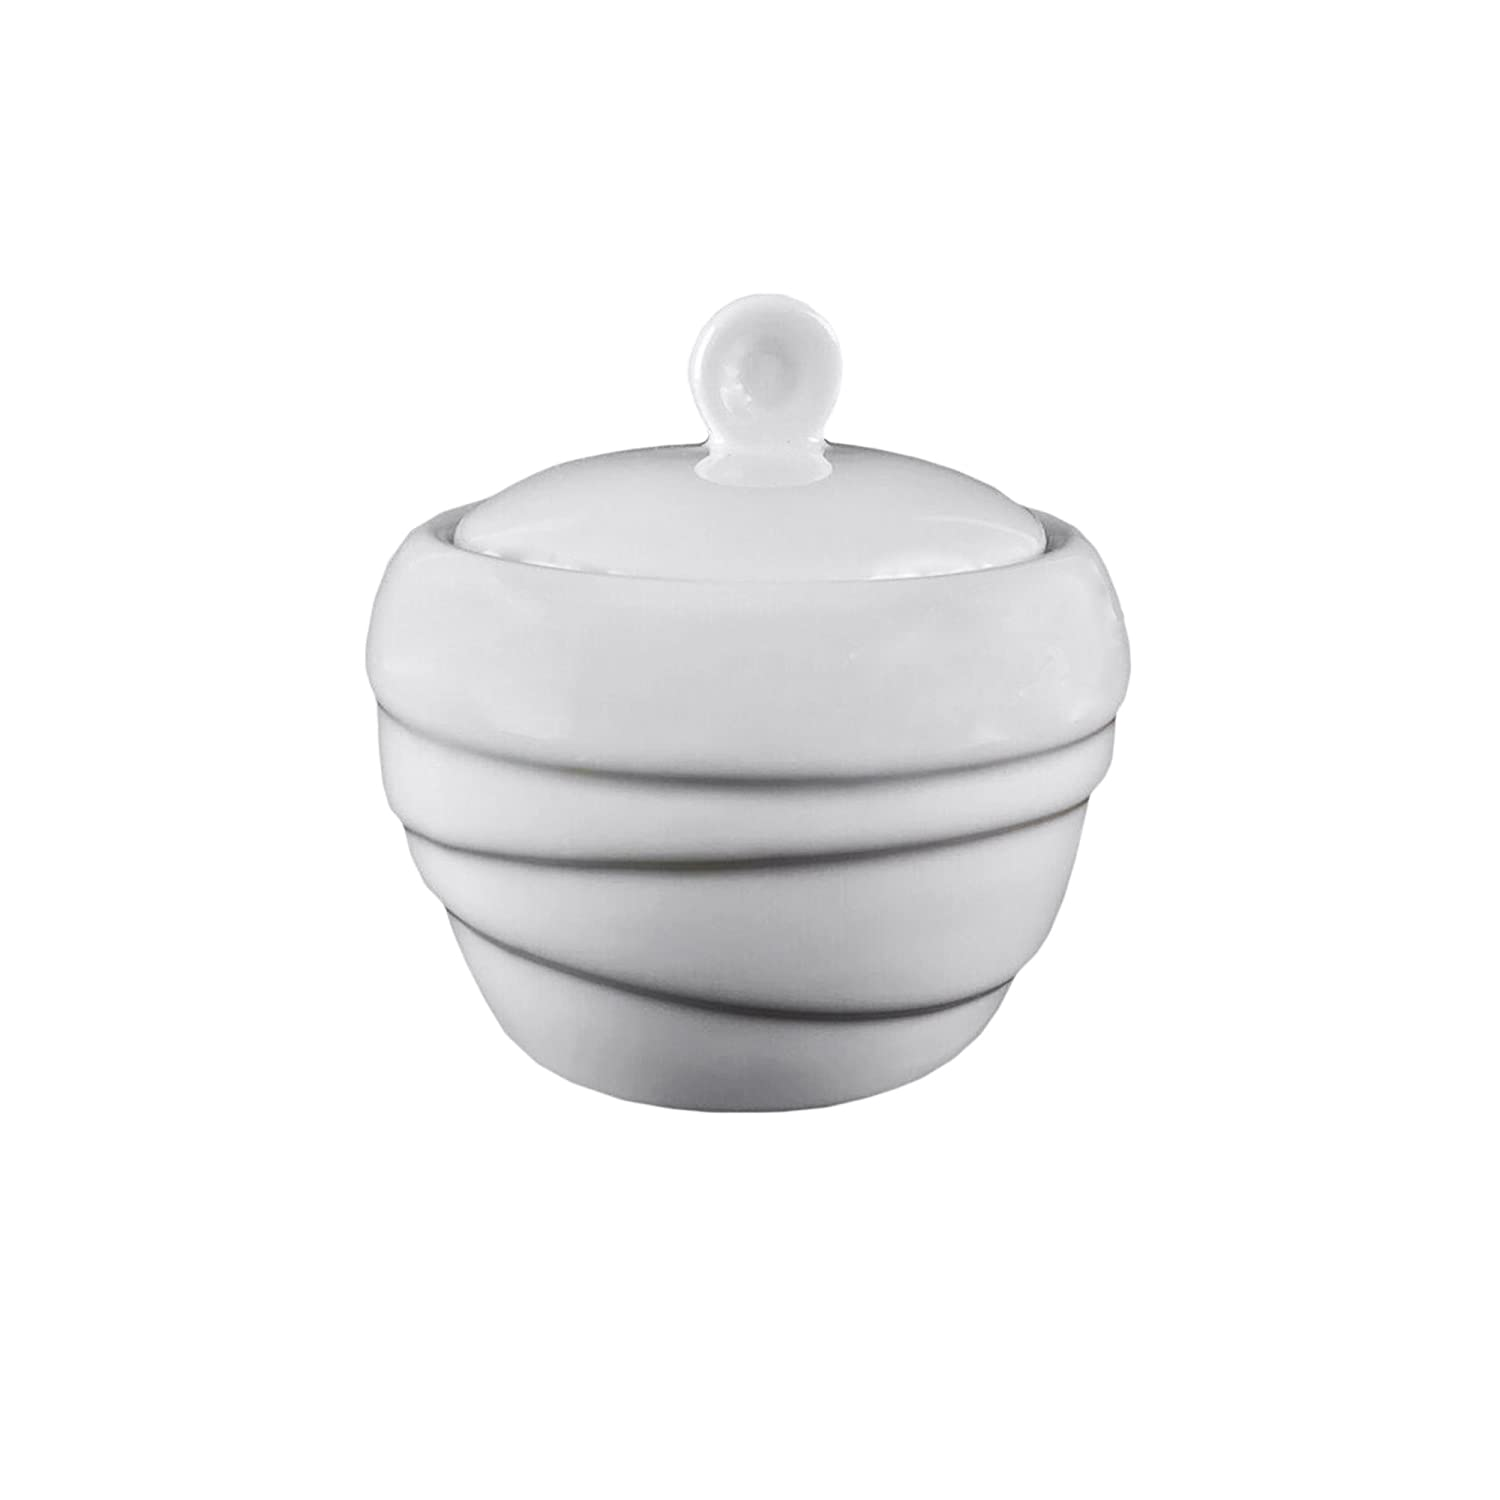 Vie Belles LH847-200 Spinning Collection 200 ml Porcelain Sugar Pot, White